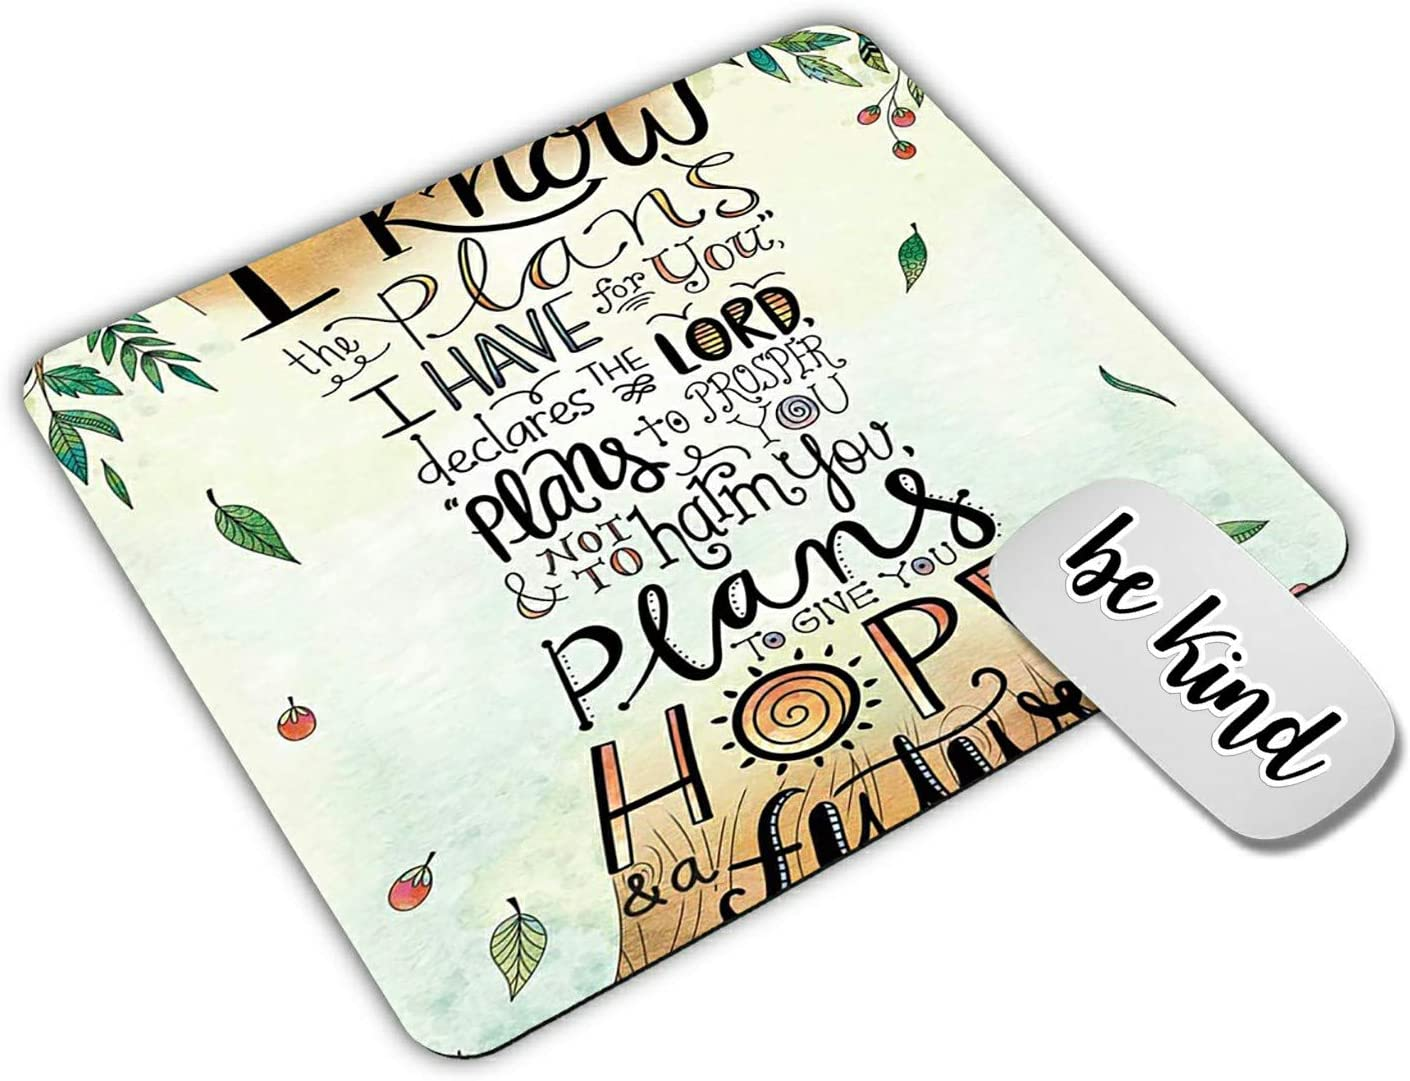 Dikoer Quotes Jeremiah 29:11 Mouse Pad for laptops Office Computer Decor,Cute Gaming Mousepad with Design,Non Slip Rubber Mouse mat and be King Sticker